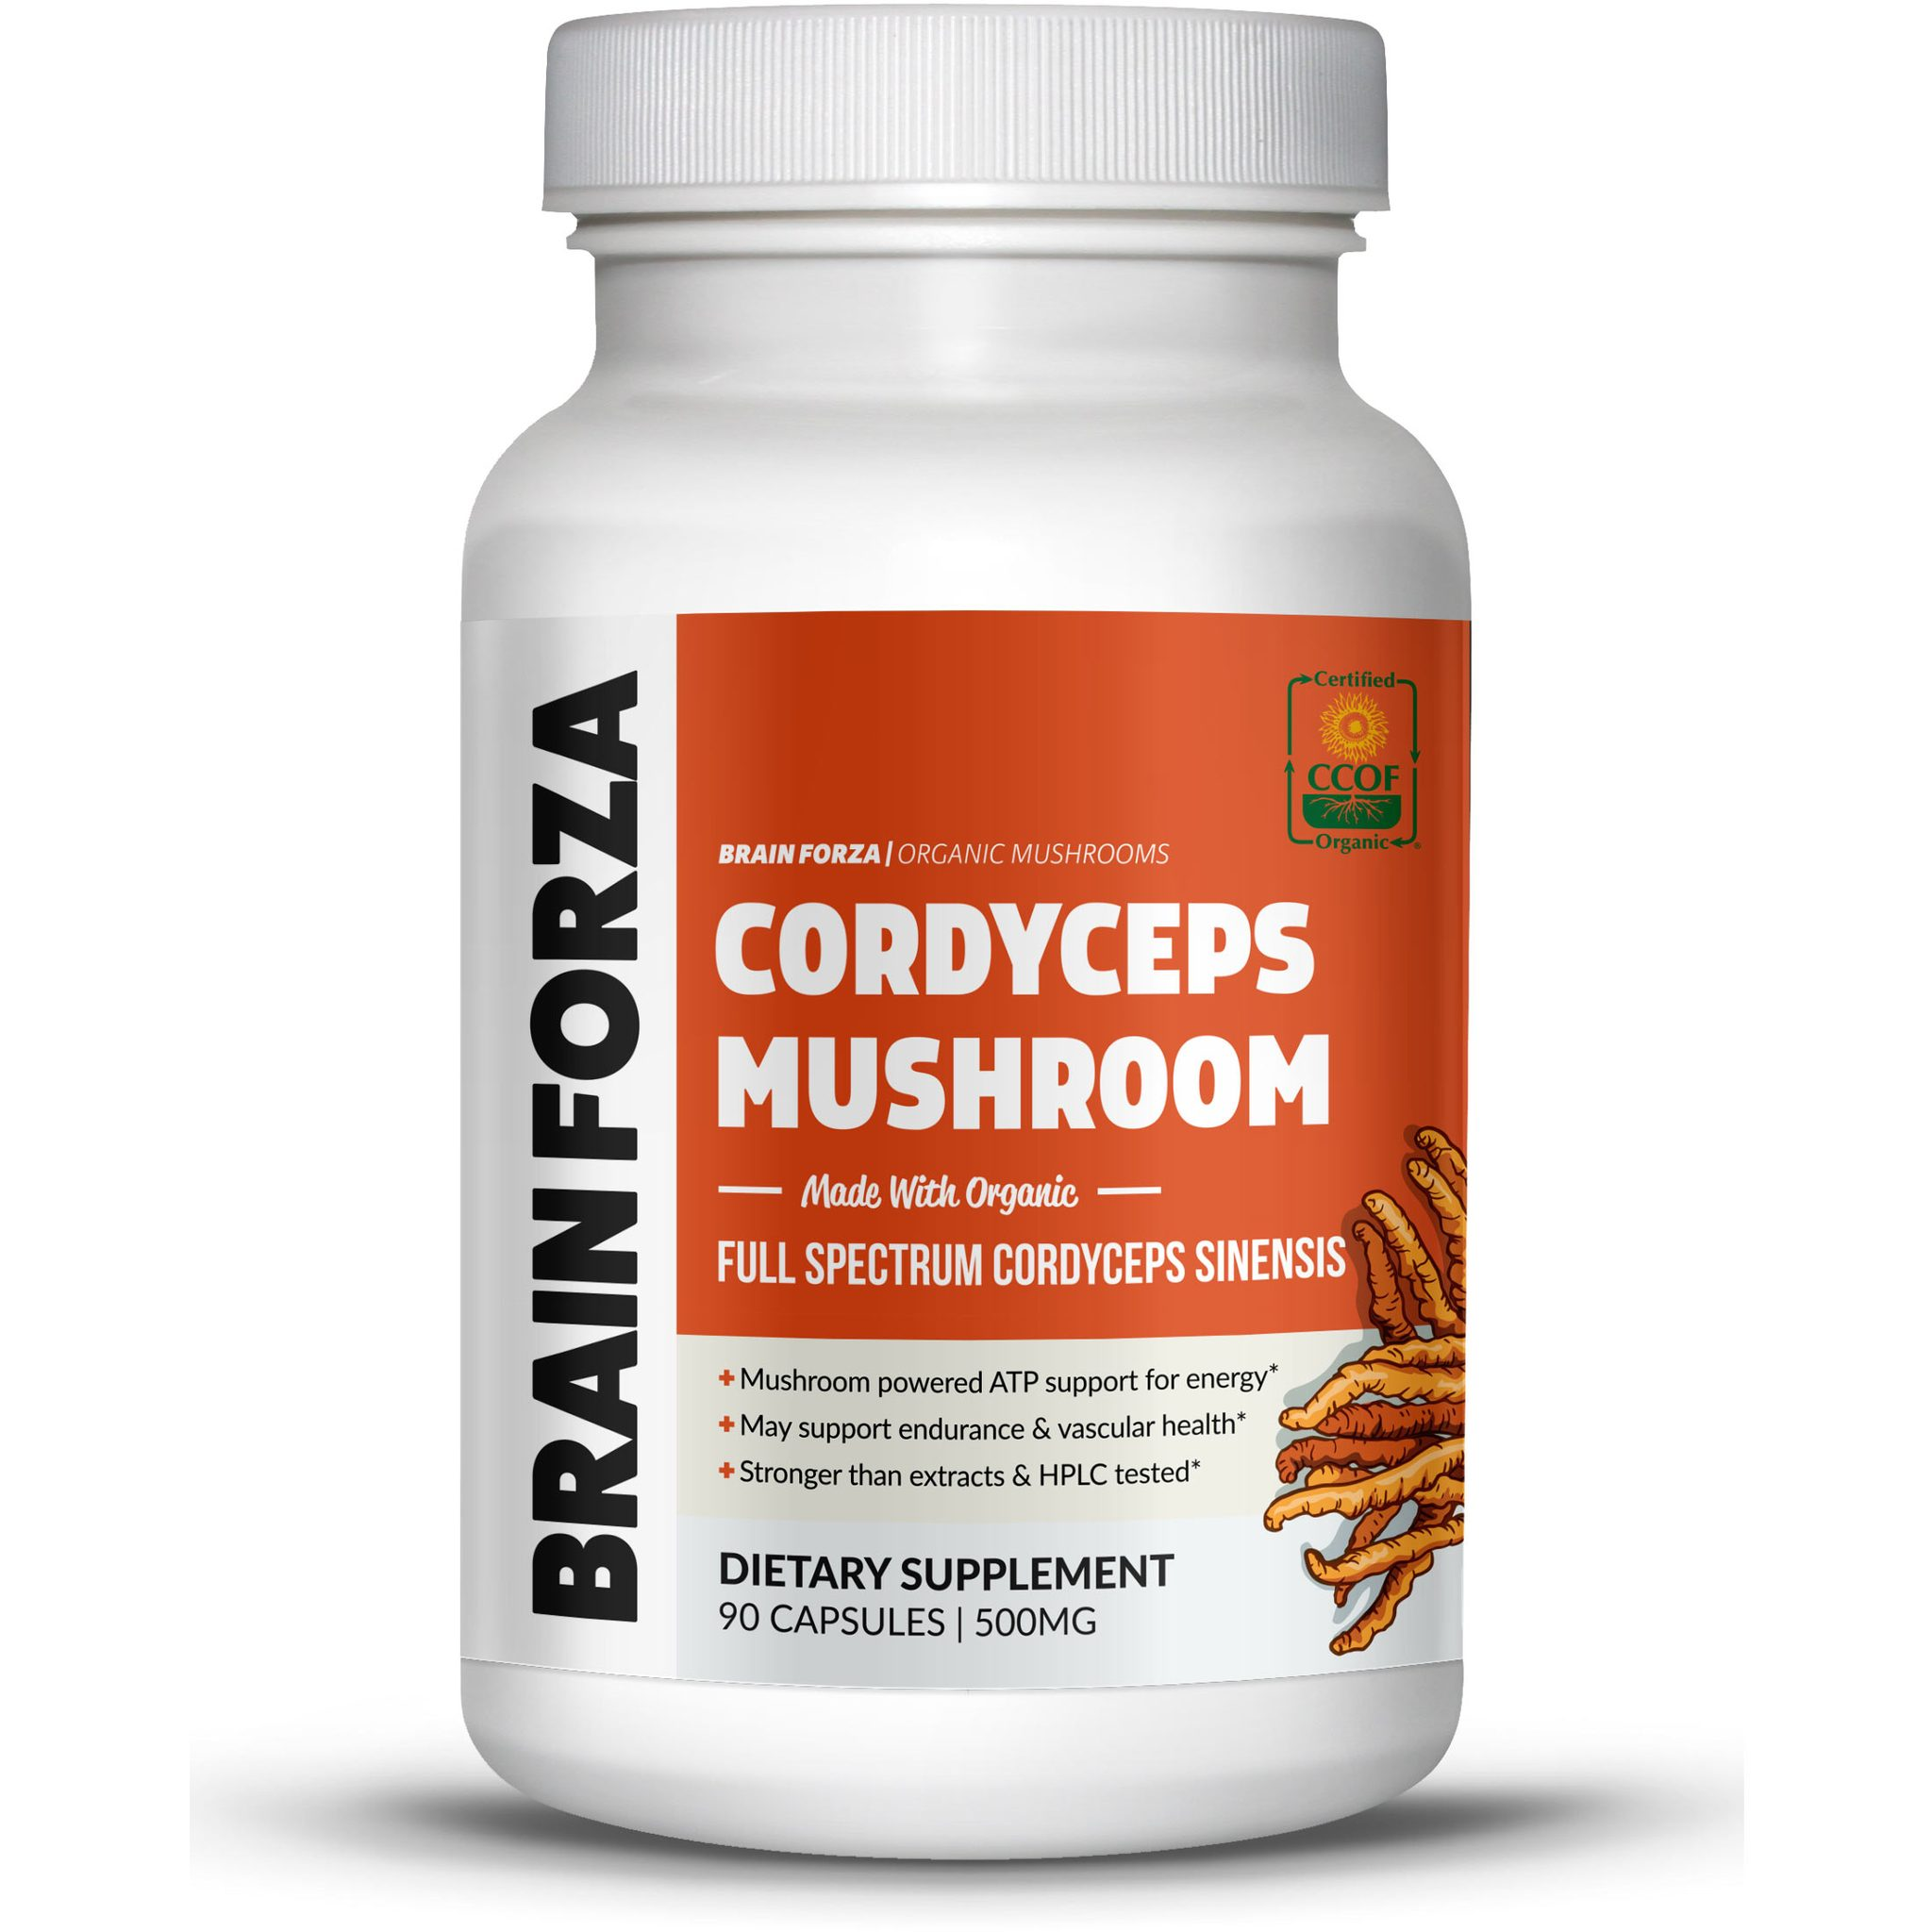 Brain Forza Organic Cordyceps Sinensis Mushroom for Energy & Endurance Support, 90 Capsules